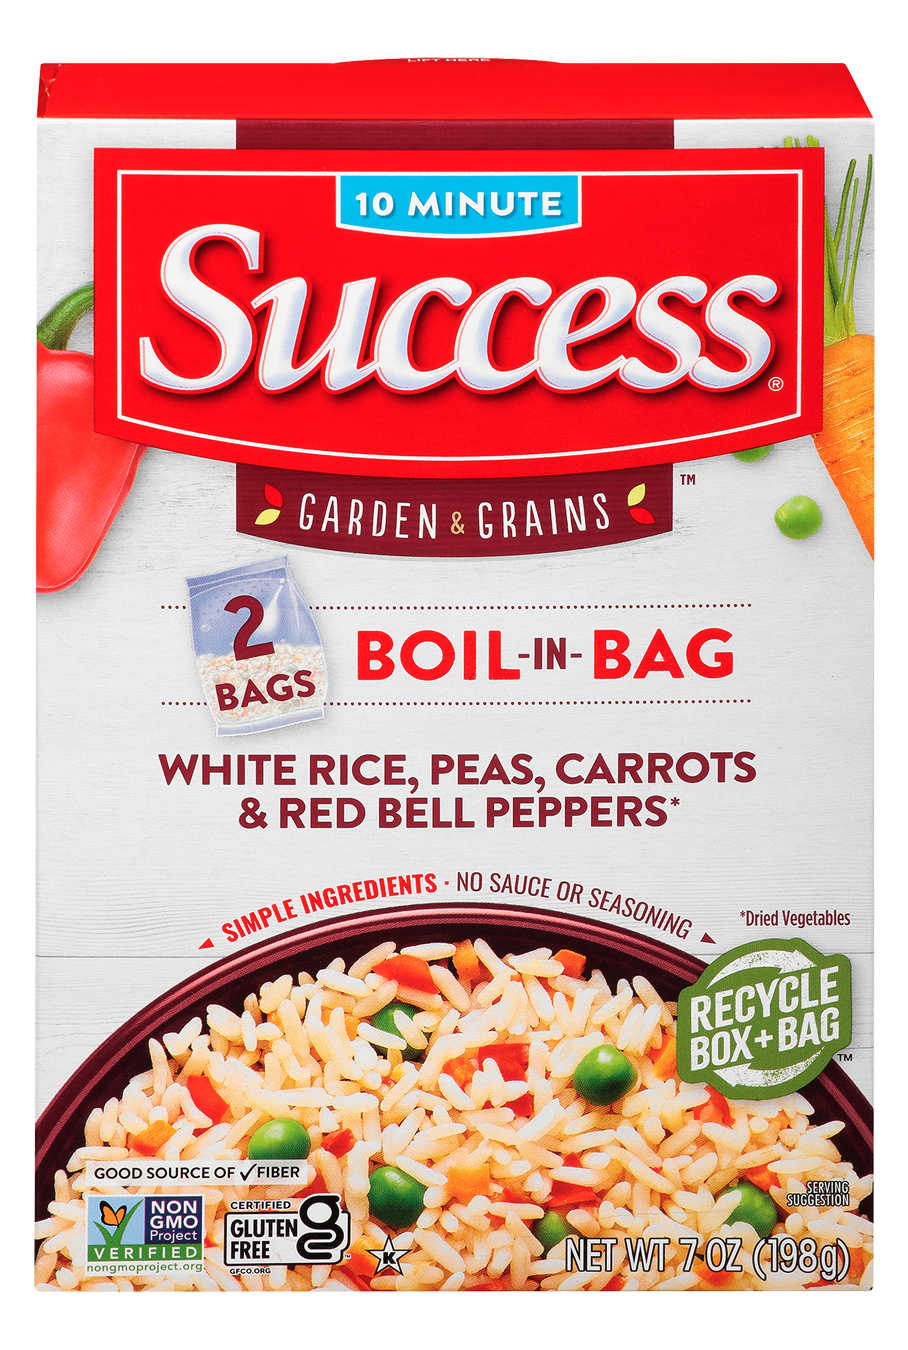 White Rice, Peas, Carrots & Red Bell Peppers